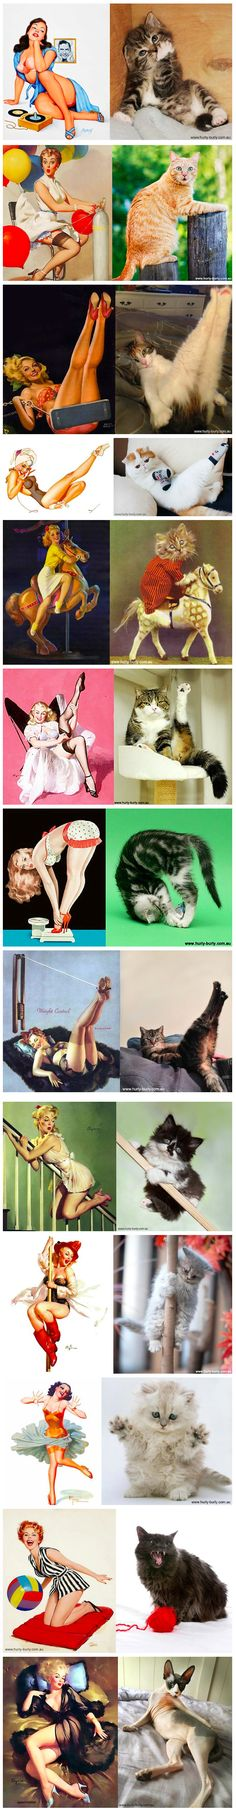 """Another day, another batch of funny cat pictures. This unique photo series, titled """"Cats That Look Like Pin Up Girls"""" pairs the voluptuous ladies from the 1940s - 1950s calendars and magazines with several adorable cats."""